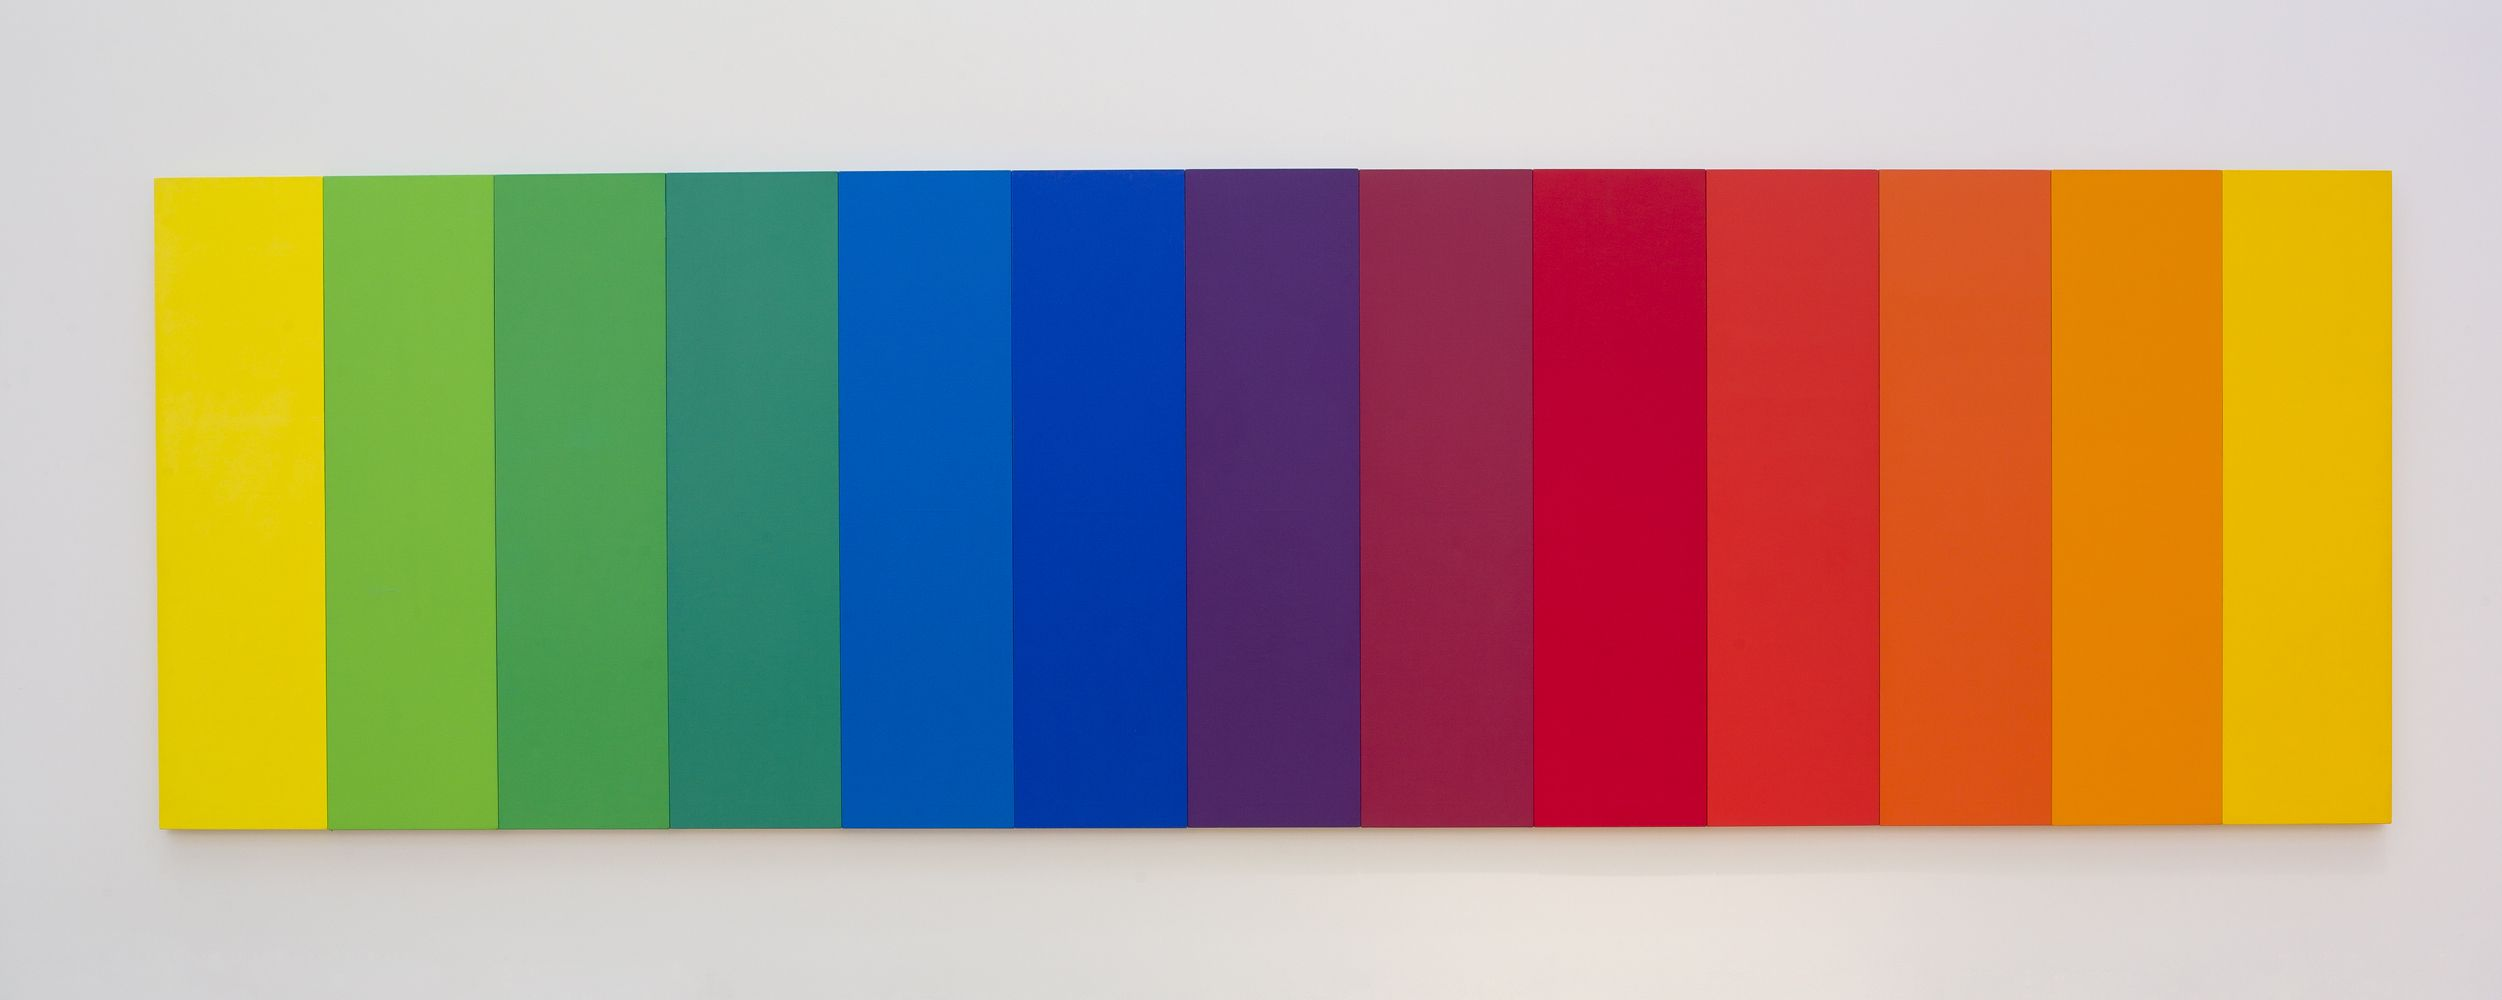 Ellsworth Kelly; Spectrum II, 1966-67; oil on canvas; 80 in. x 22 ft ...